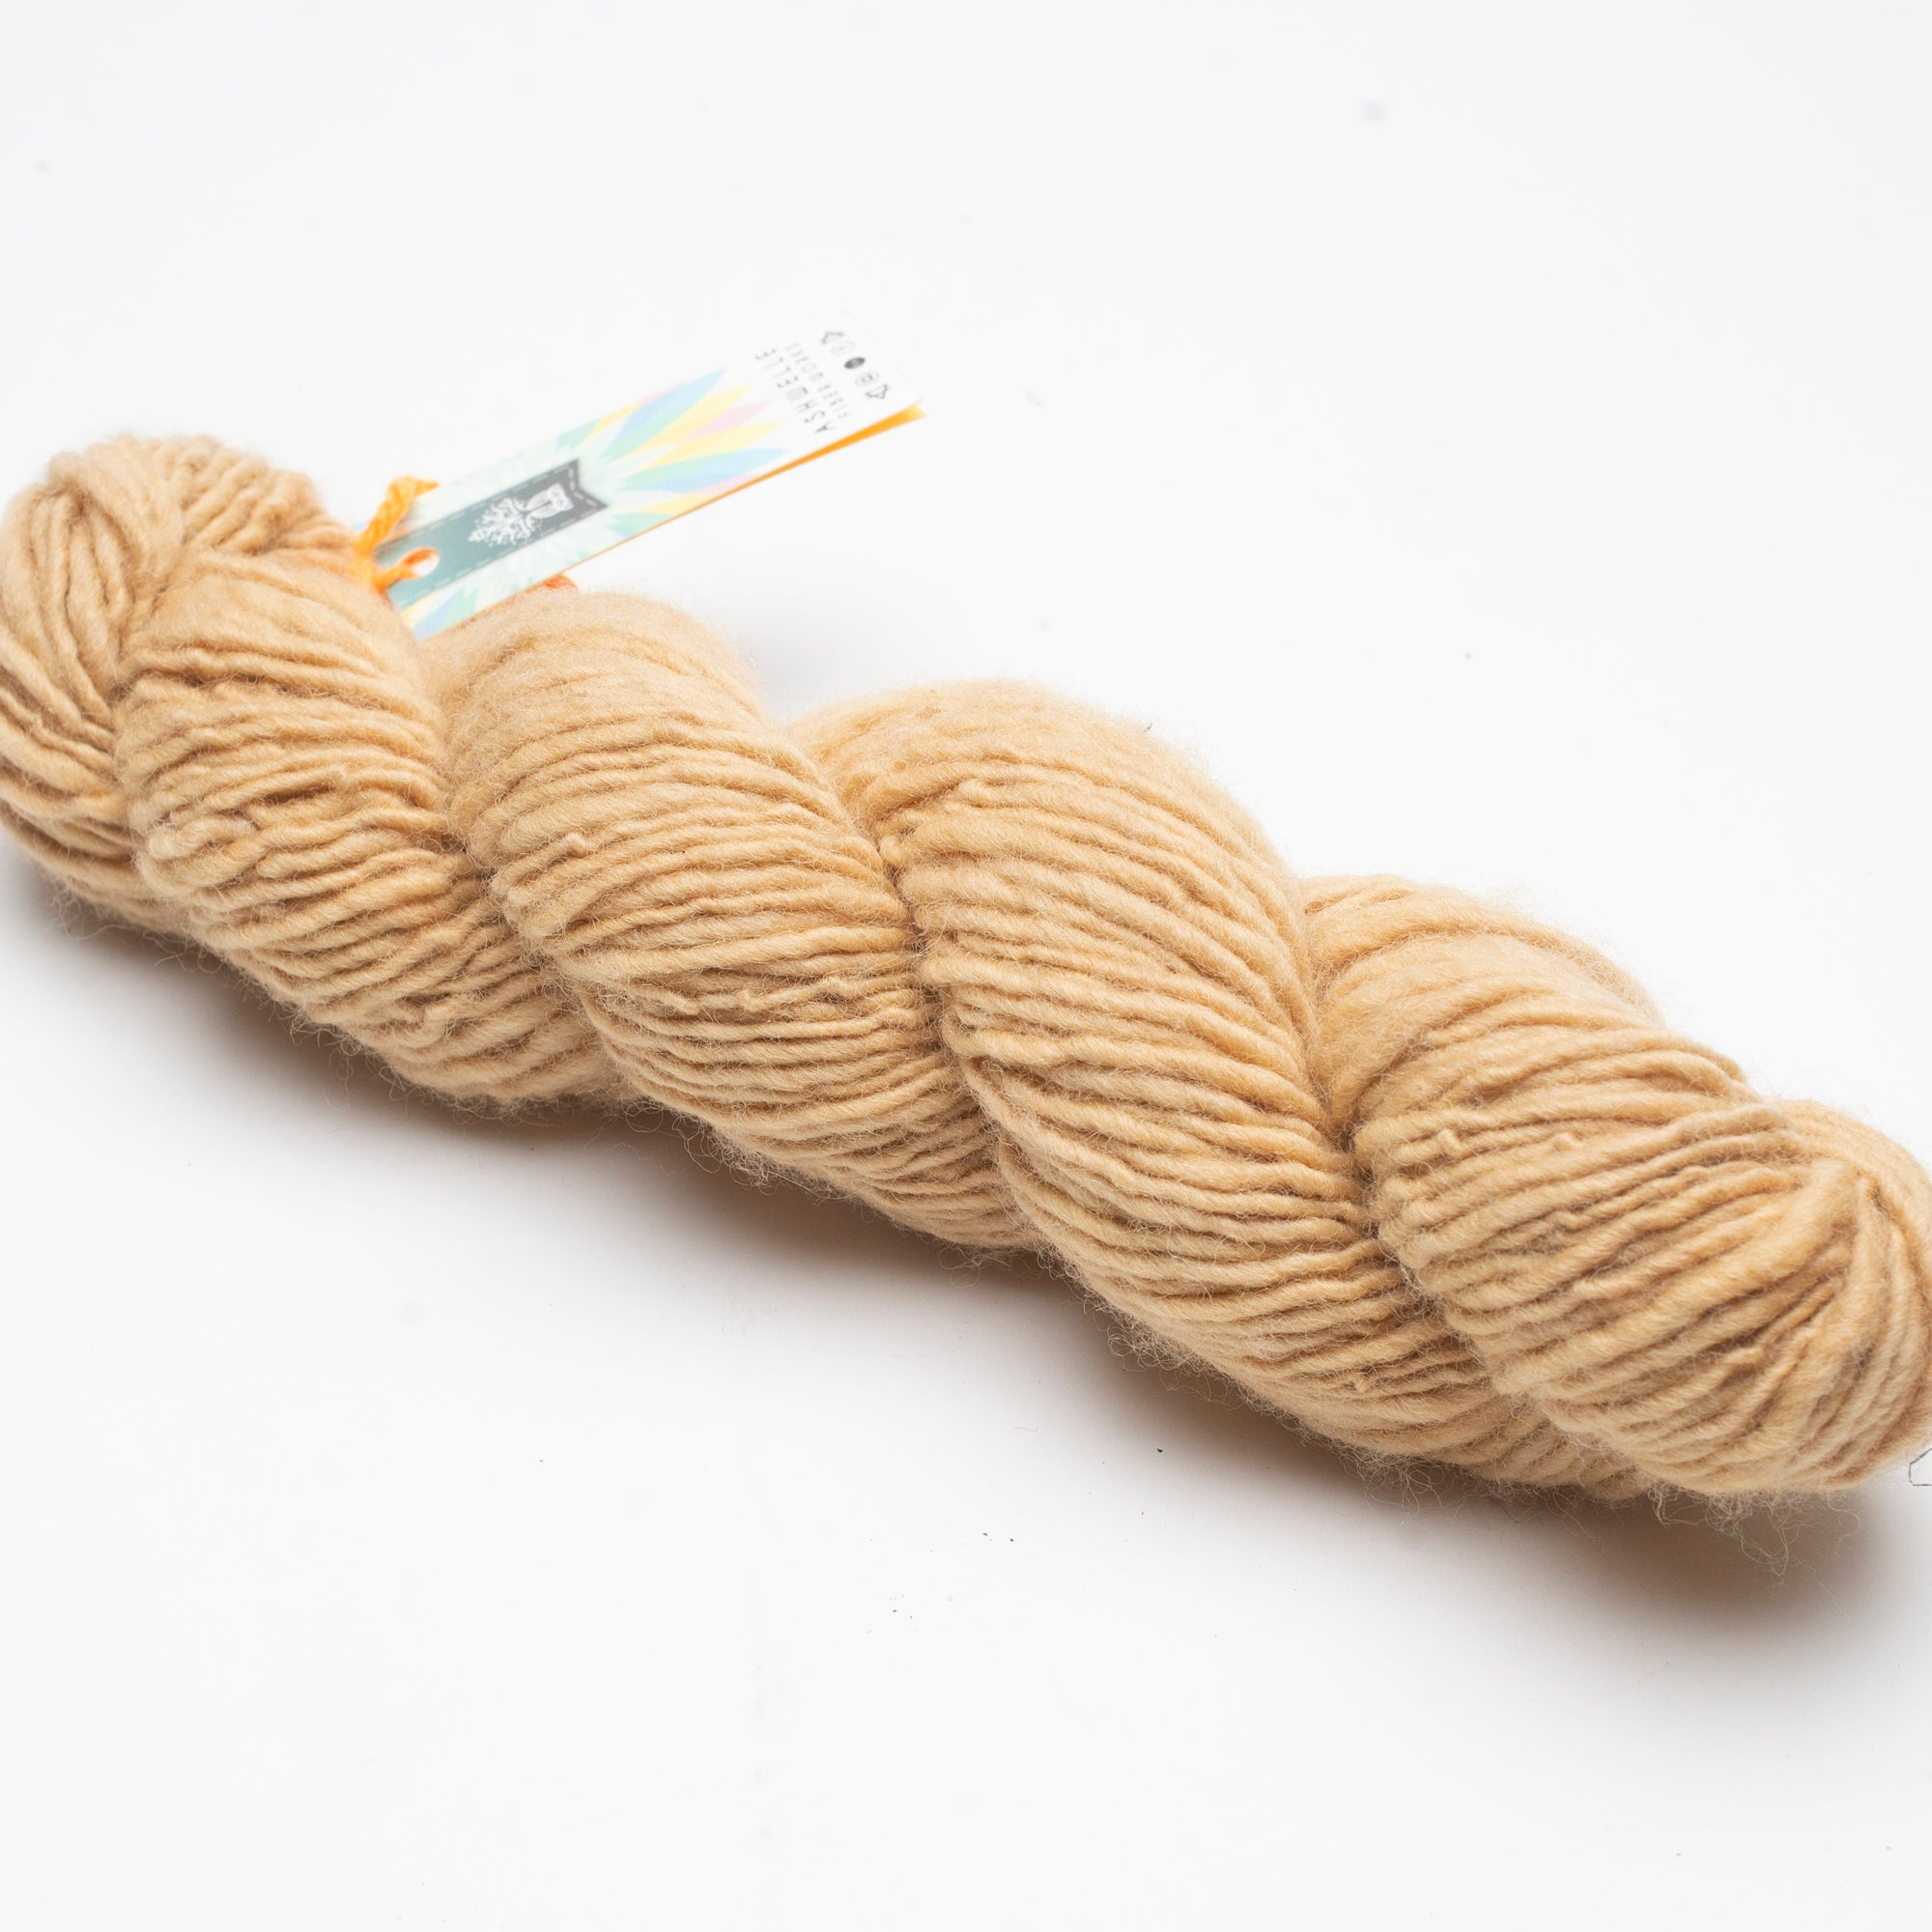 Yarn - Hand Spun Polwarth Naturally Dyed with Eucalyptus, Ashwelle Fiber Works, Handcrafted Home Goods and Gifts